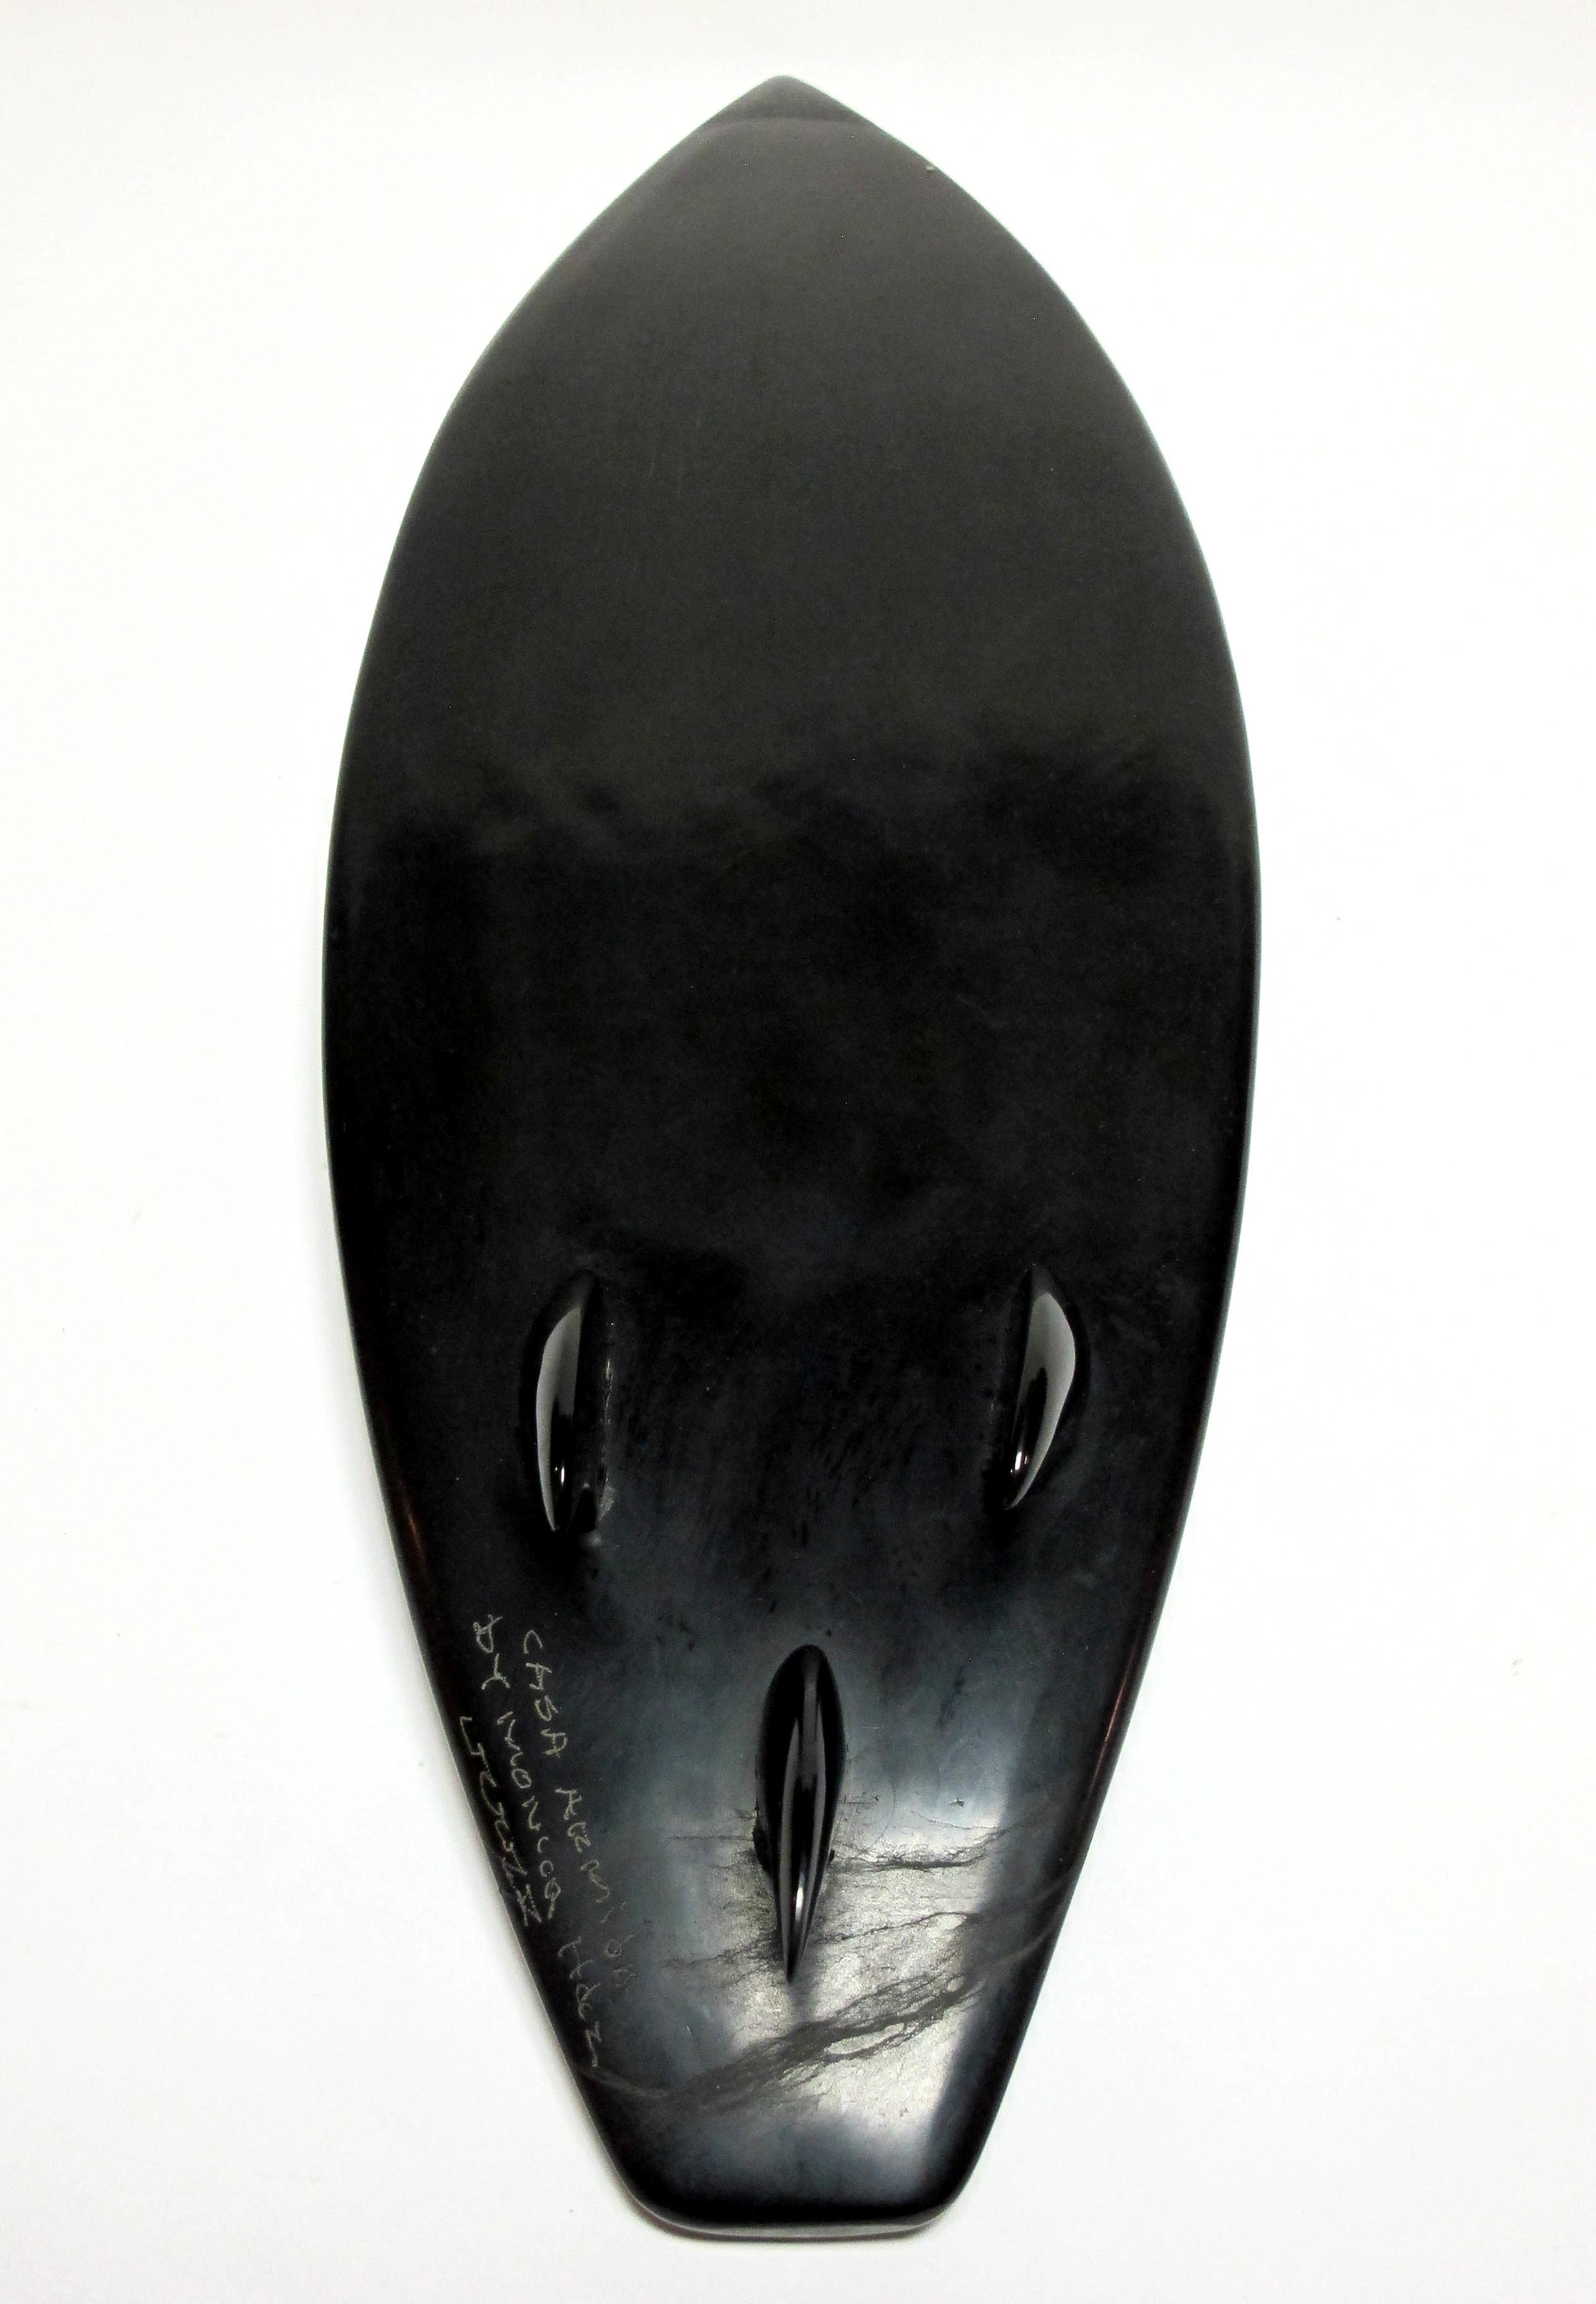 KL_Surfboard Small_black marble7.jpg